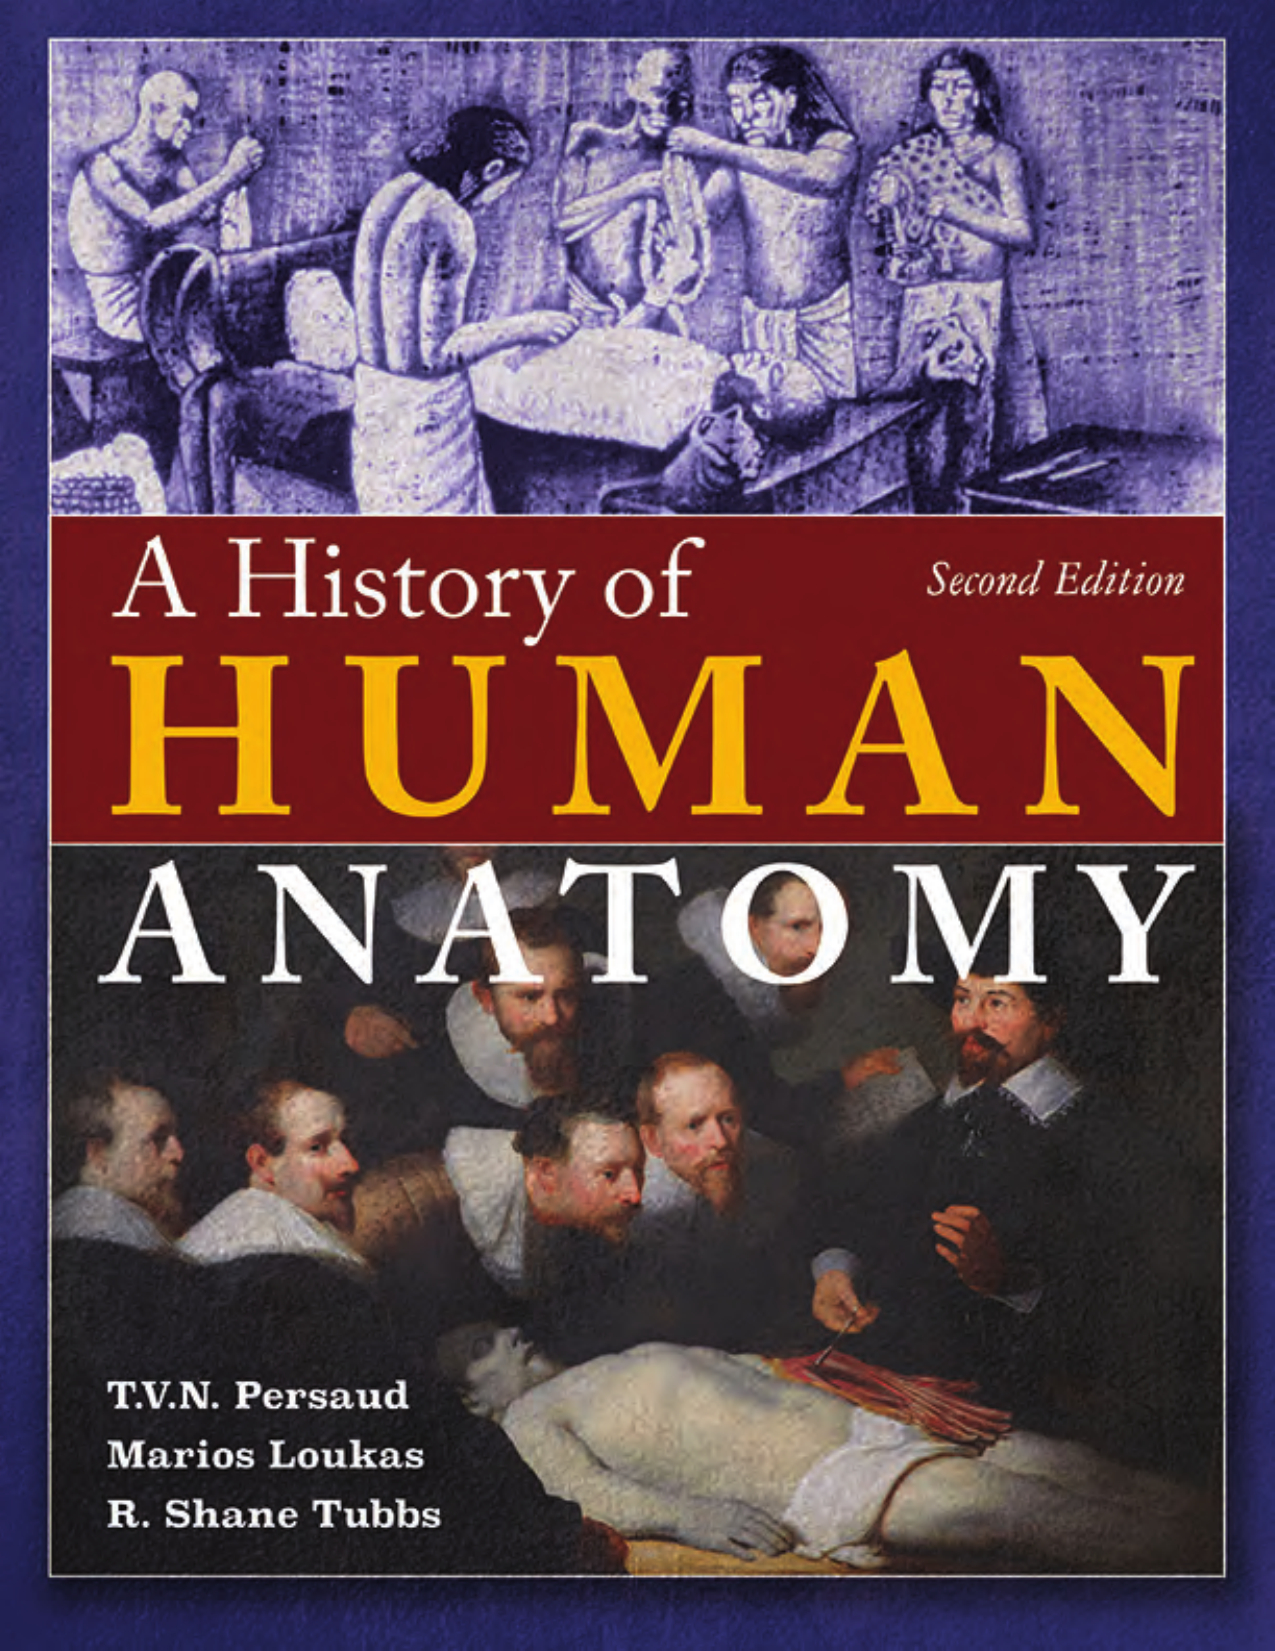 182.A History of Human Anatomy